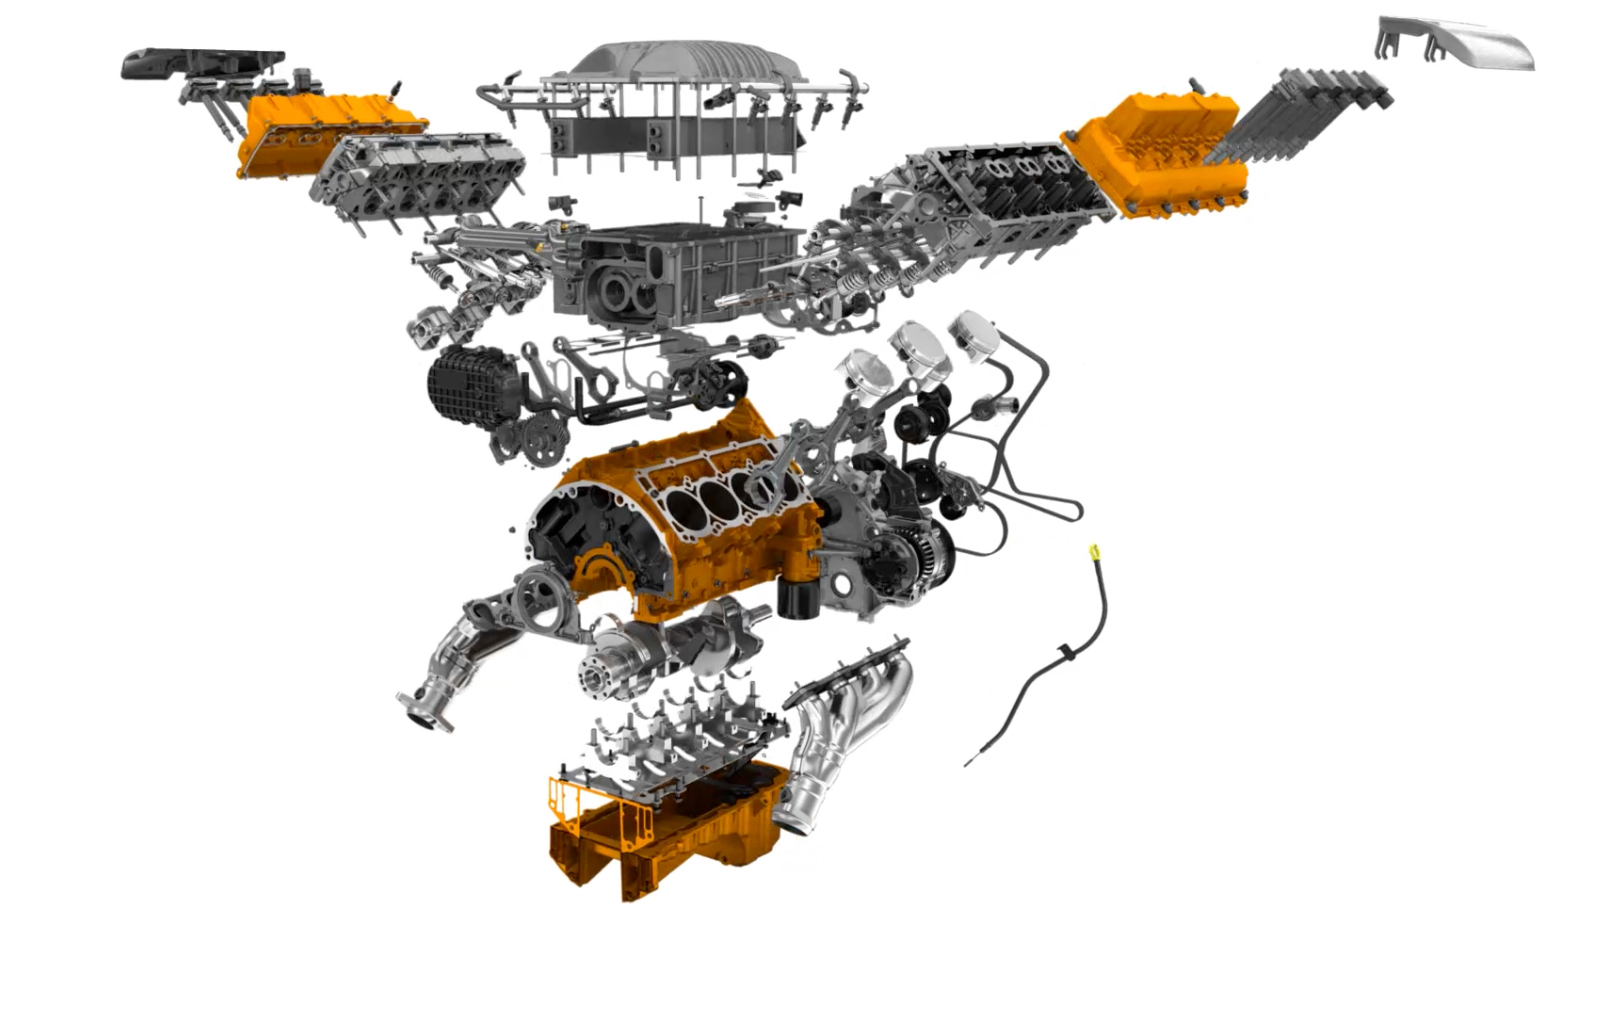 hight resolution of the hellcat engine will fit in the 2020 jeep gladiator and wrangler but jeep won t do it for one good reason top speed